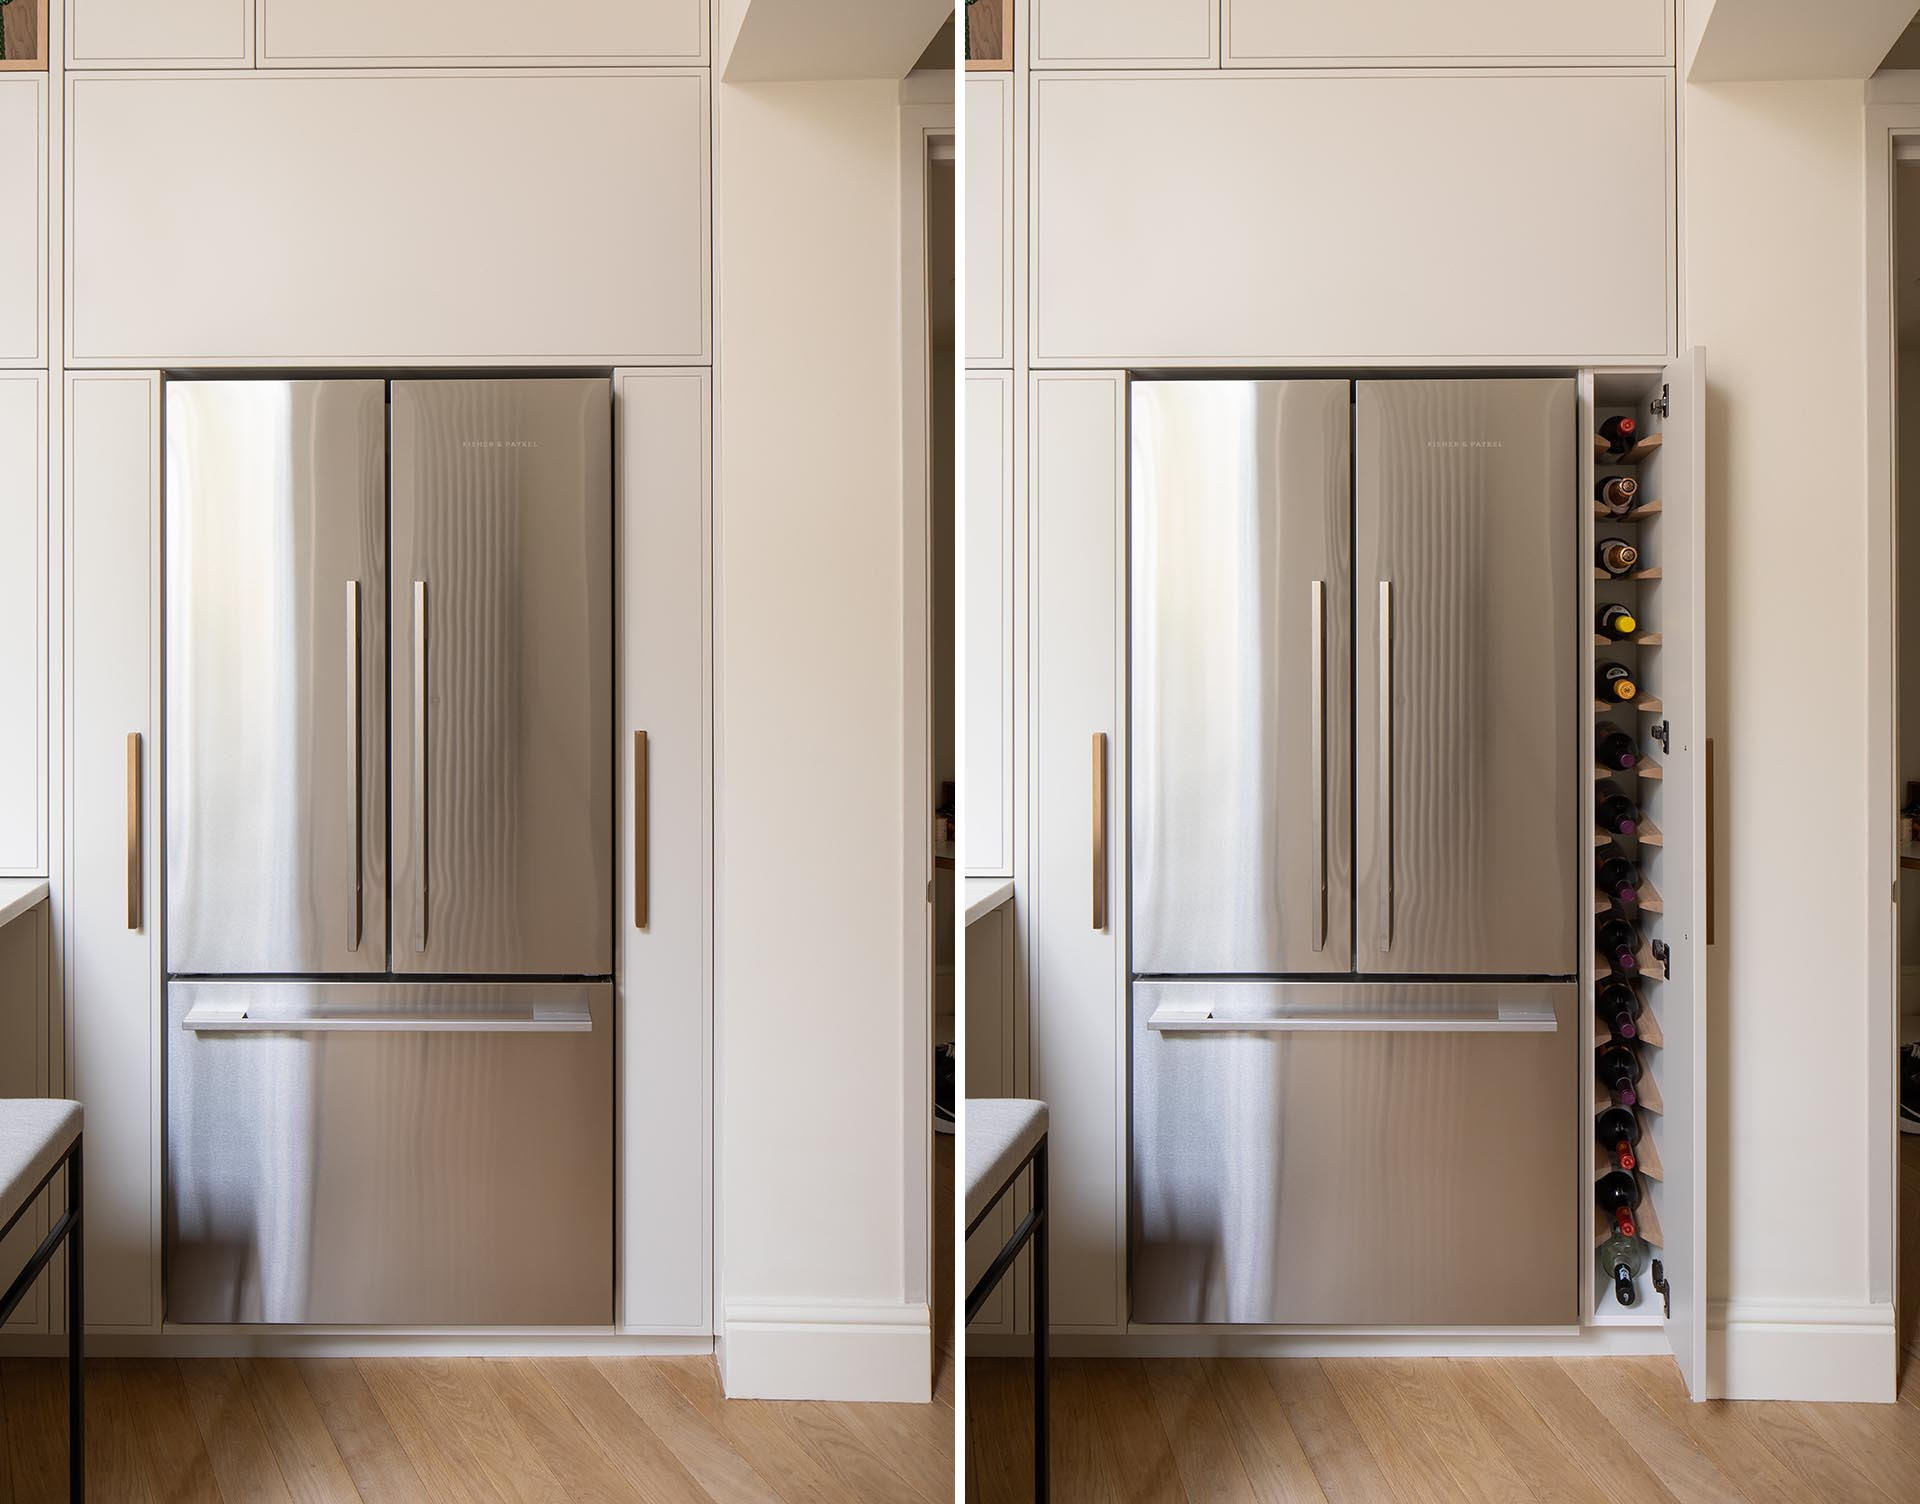 Tall skinny cabinets on either side of the fridge act as wine storage and as a pull-out larder.